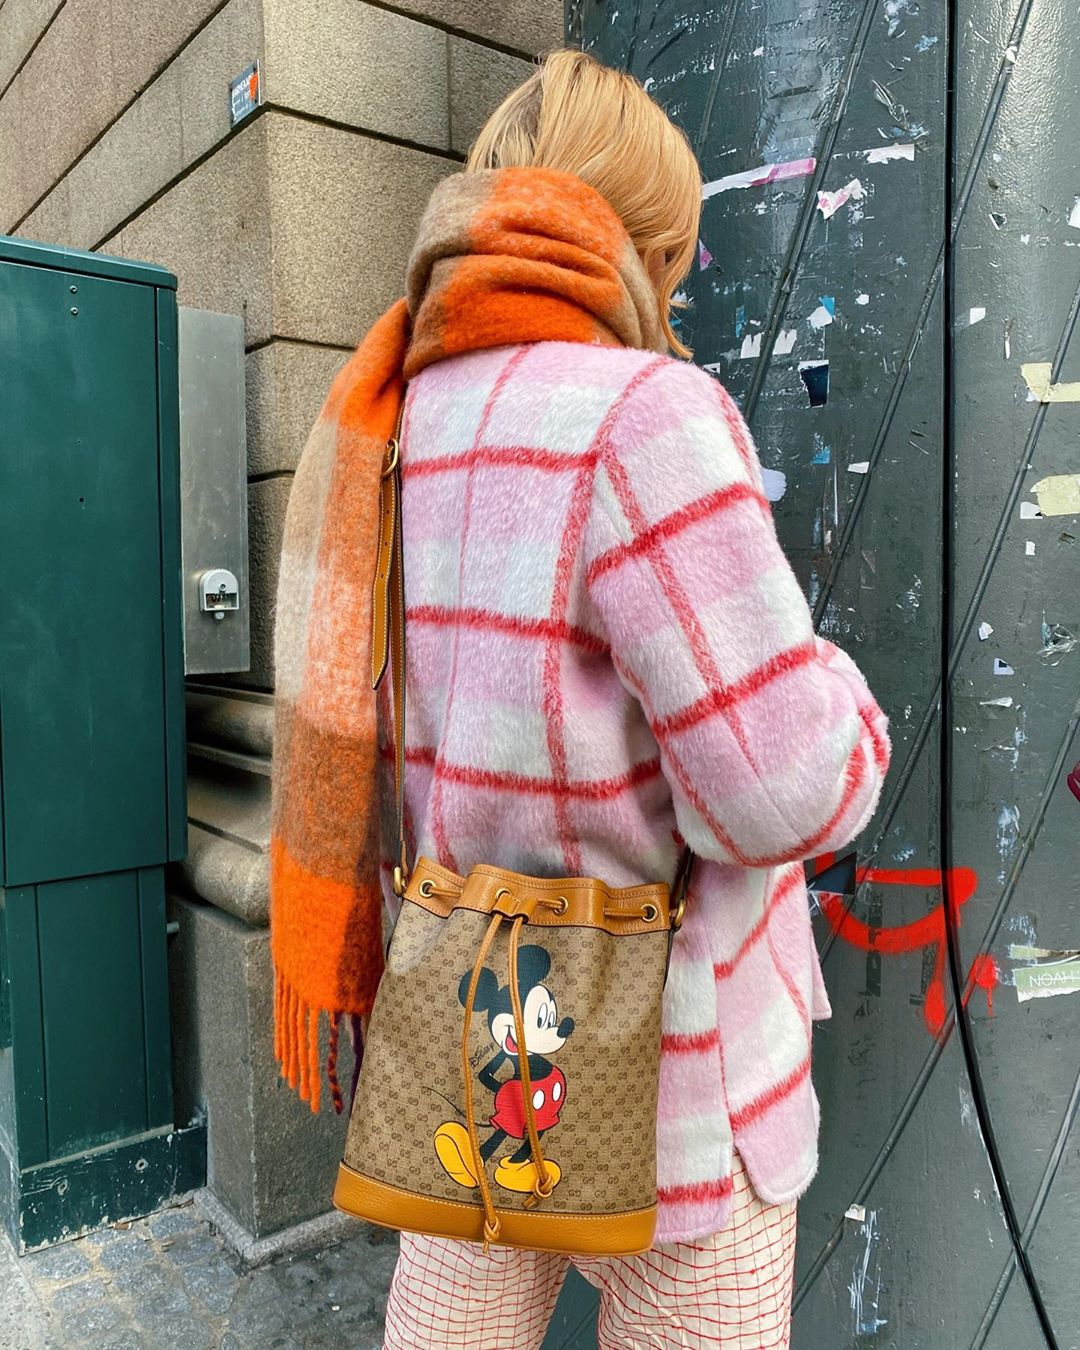 marianne-theodorsen-gucci-x-disney-gg-supreme-canvas-bucket-bag-instagram